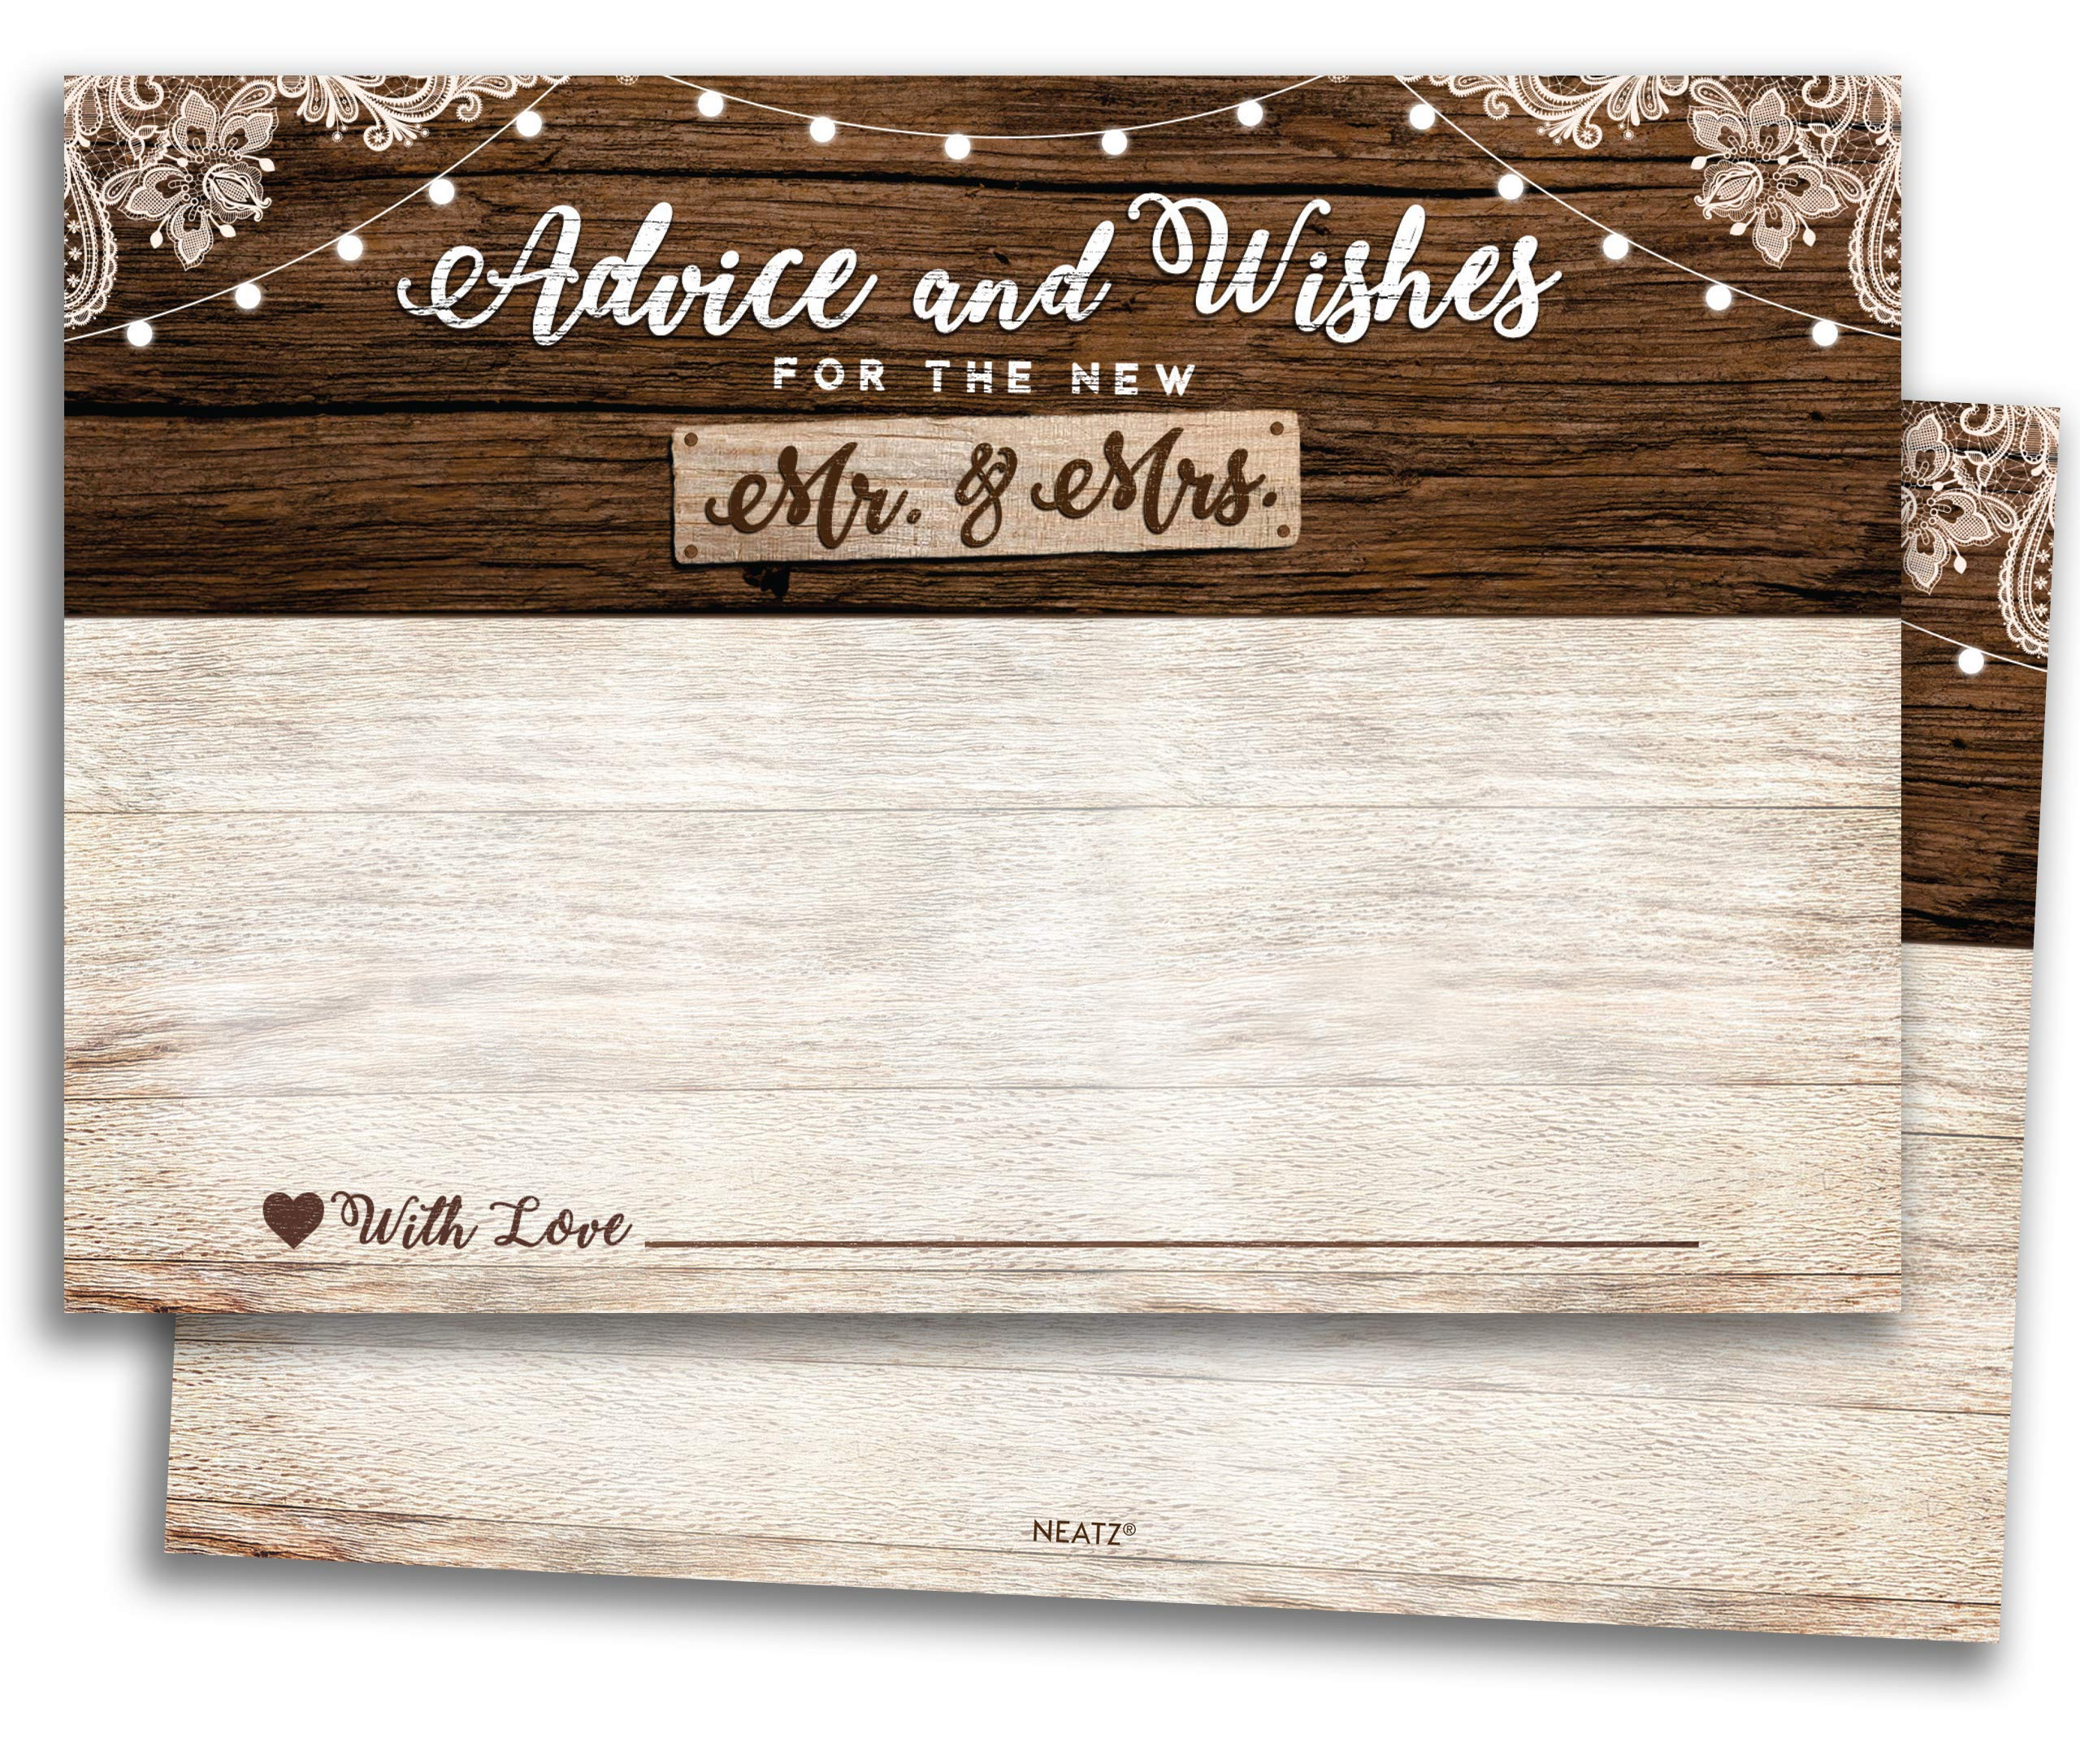 50 Rustic Wedding Advice Cards & Well Wishes for the Bride and Groom - Bridal Shower Games, Rustic Wedding Decorations, Bridal Shower Decorations